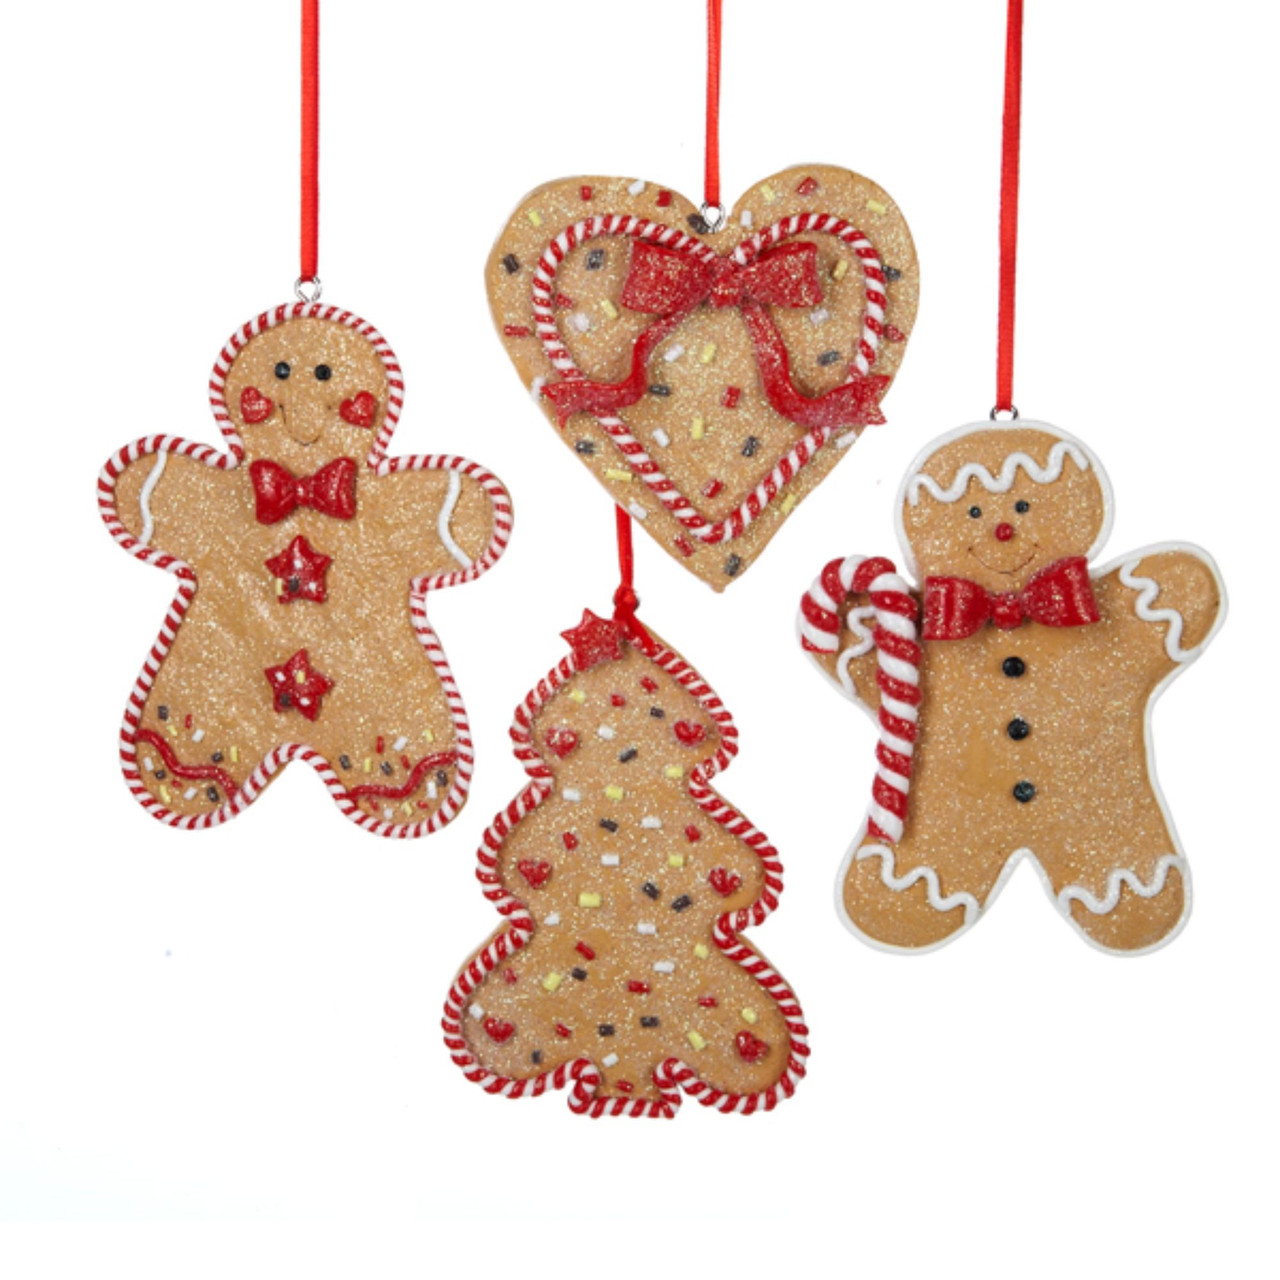 24 Gingerbread Kisses Claydough Men, Tree & Heart Christmas ...